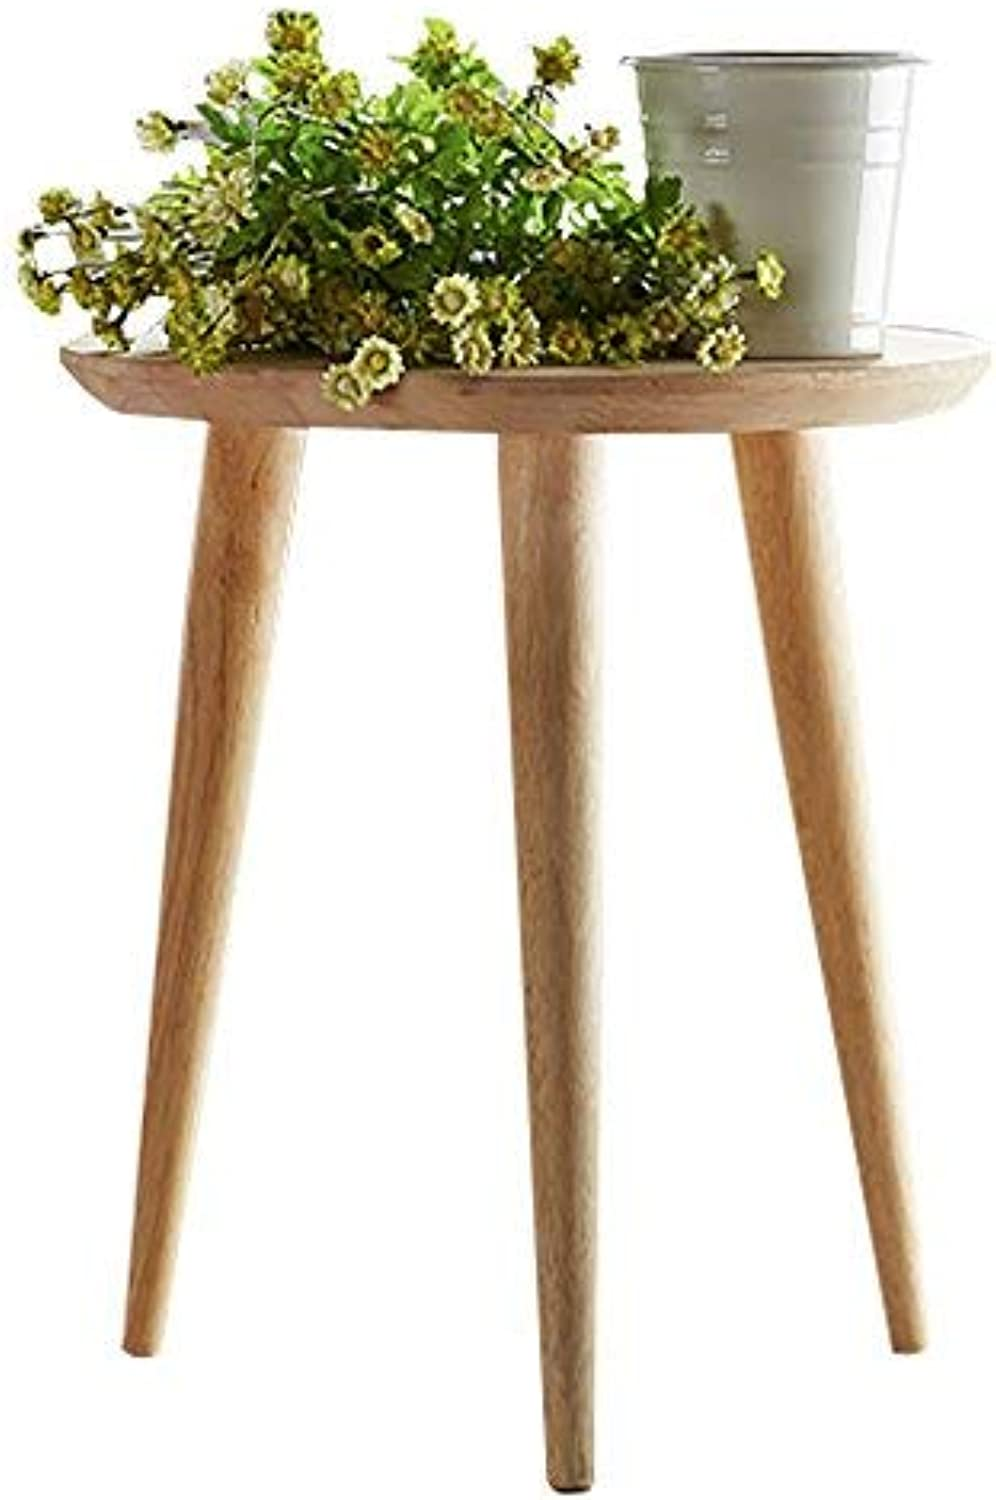 Small Round Coffee Tables Wooden End Table Nesting Tables Modern Side Table Beside Tables Living Room Furniture Sets (Φ15.75X24.41inch)